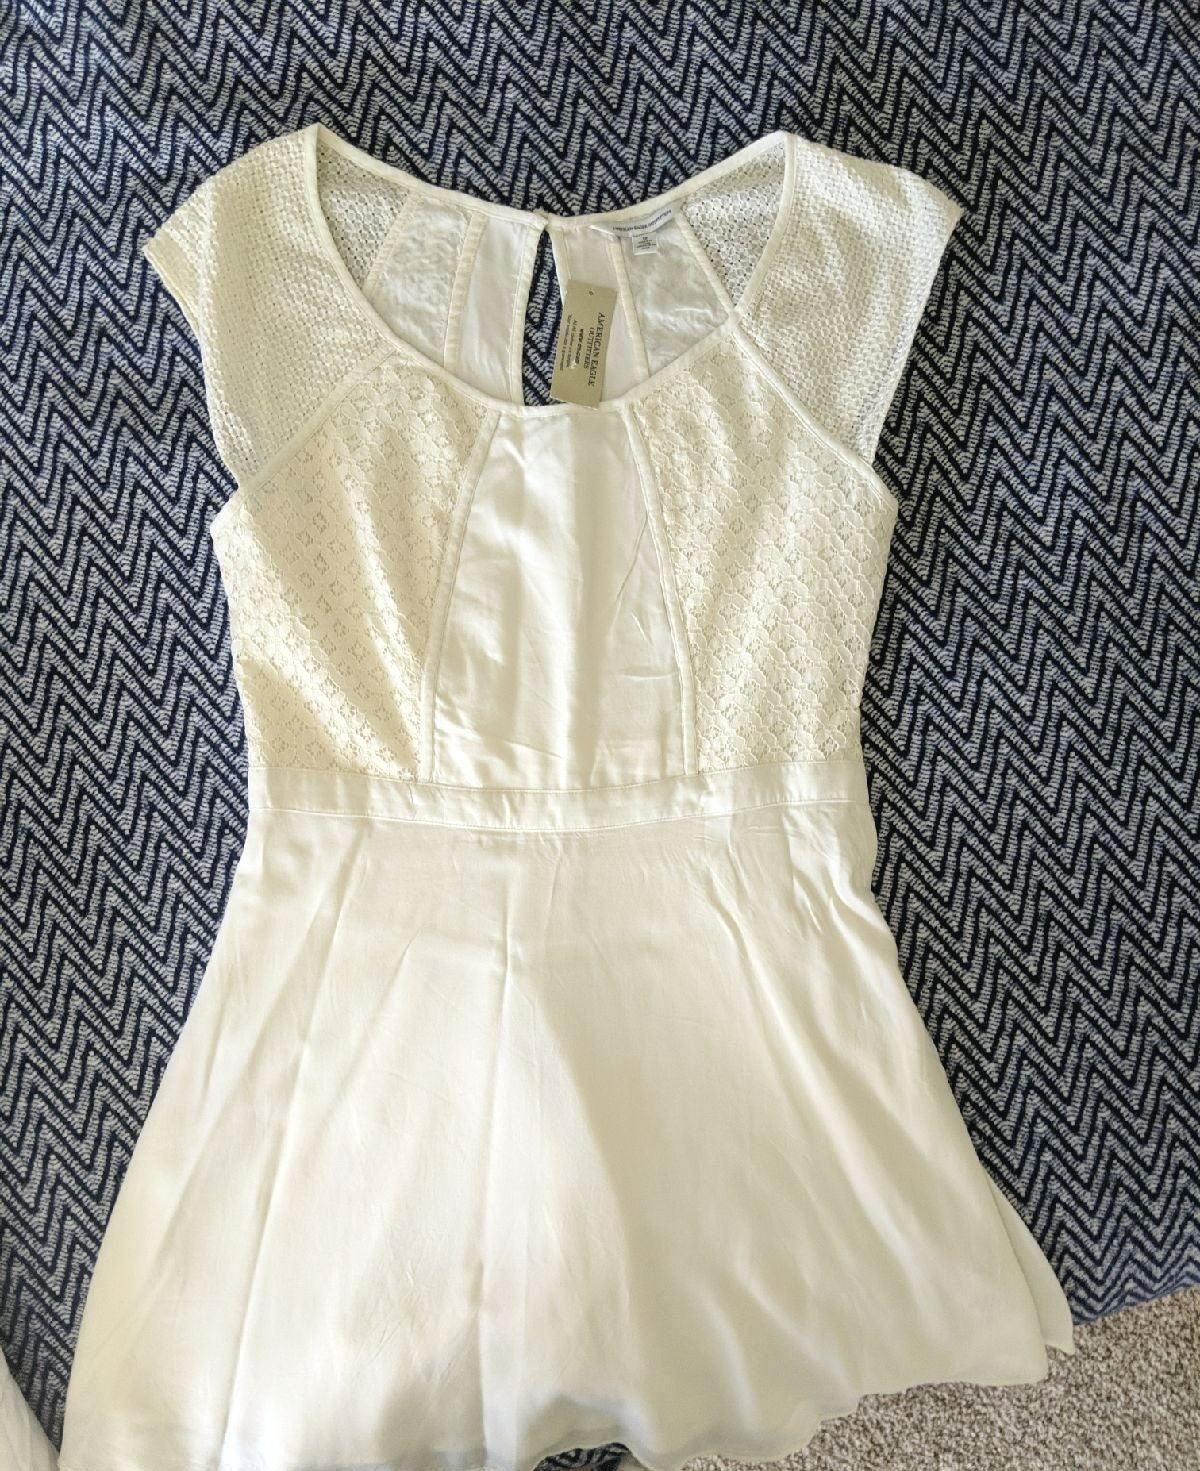 American Eagle dress size 12 Large